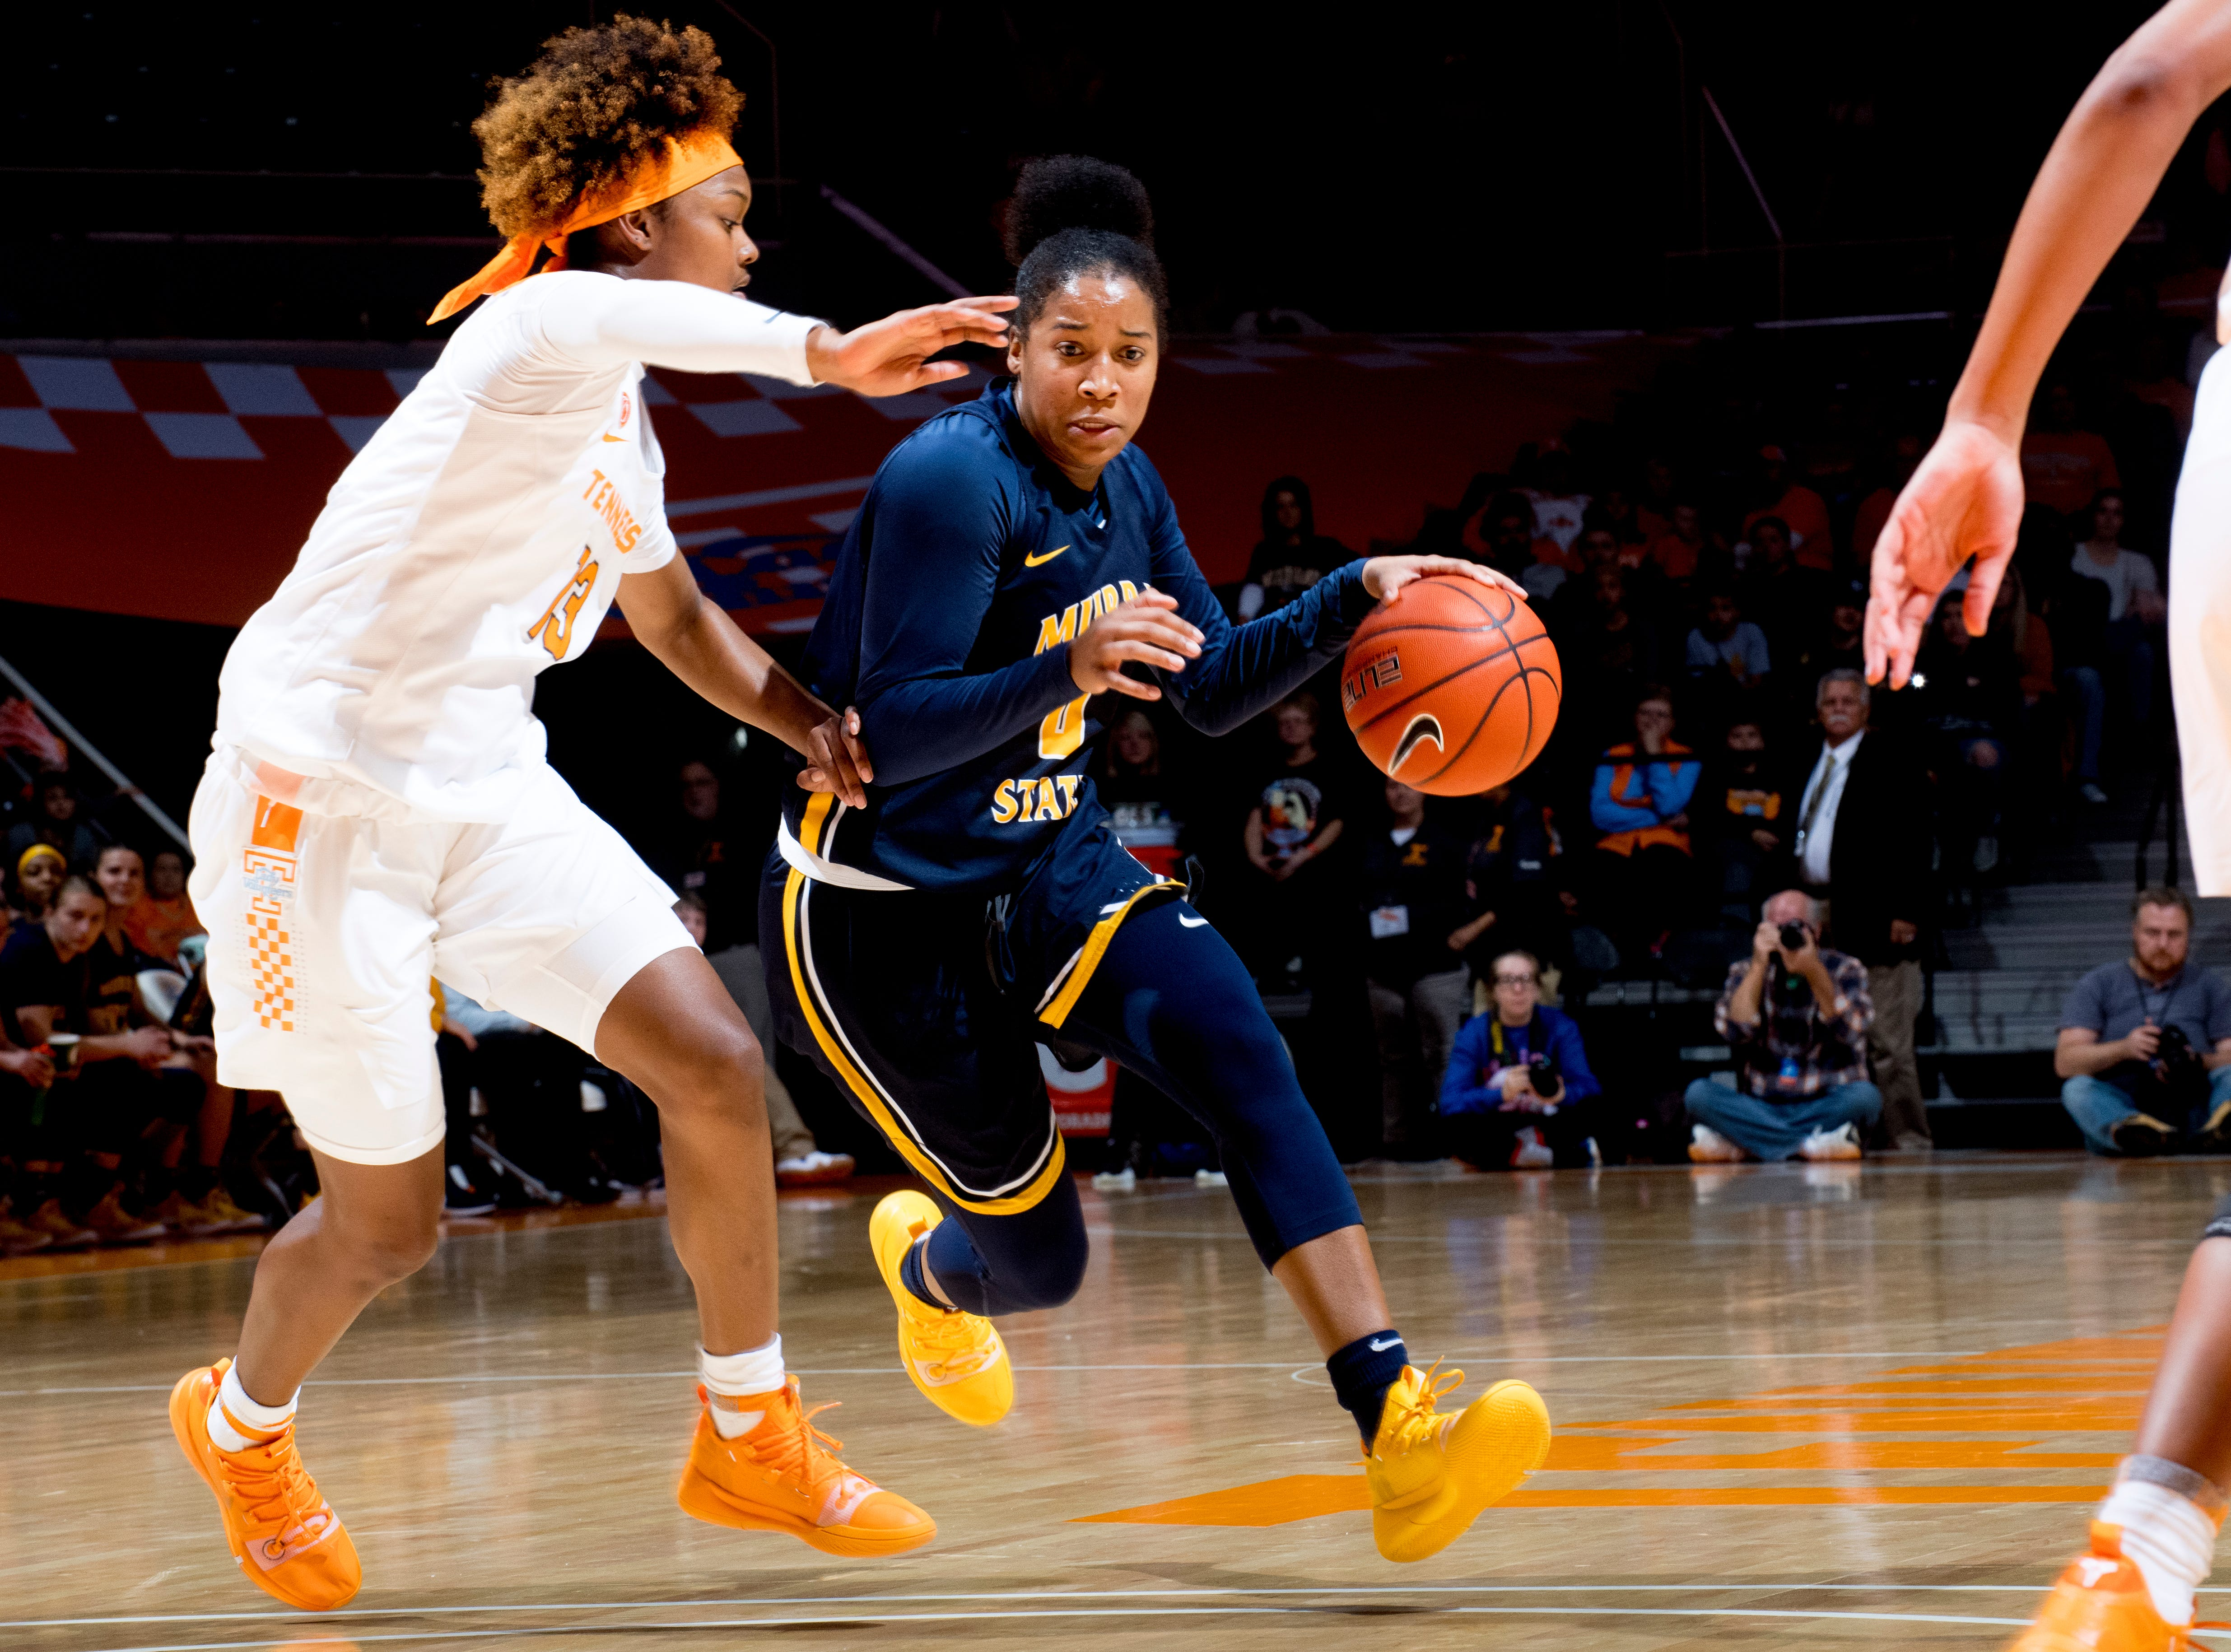 Murray State guard Janika Griffith-Wallace (0) dribbles around Tennessee guard Jazmine Massengill (13) during a game between the Tennessee Lady Vols and Murray State at Thompson-Boling Arena in Knoxville, Tennessee on Friday, December 28, 2018.